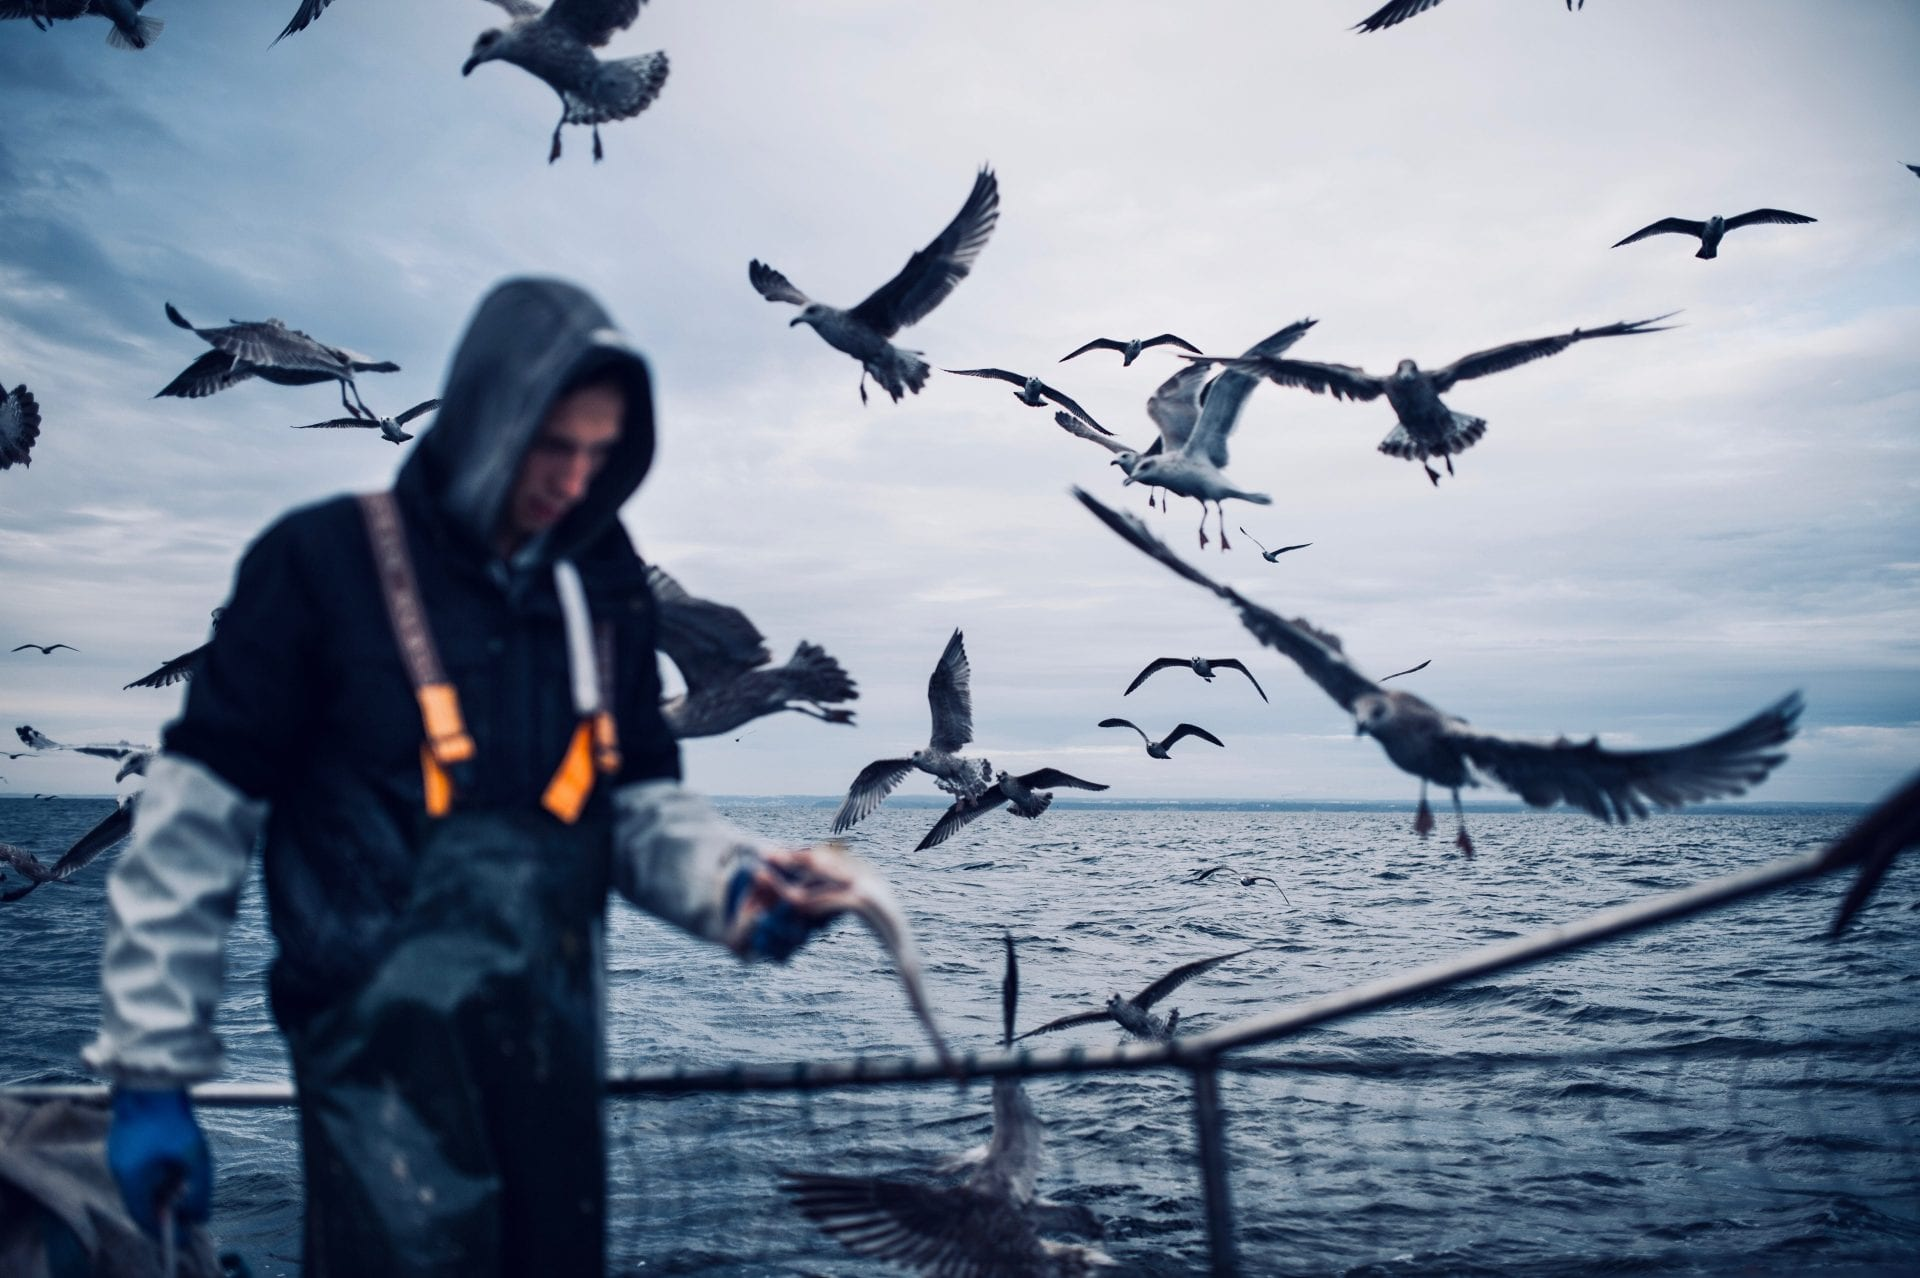 fisherman-surrounded-by-seagulls